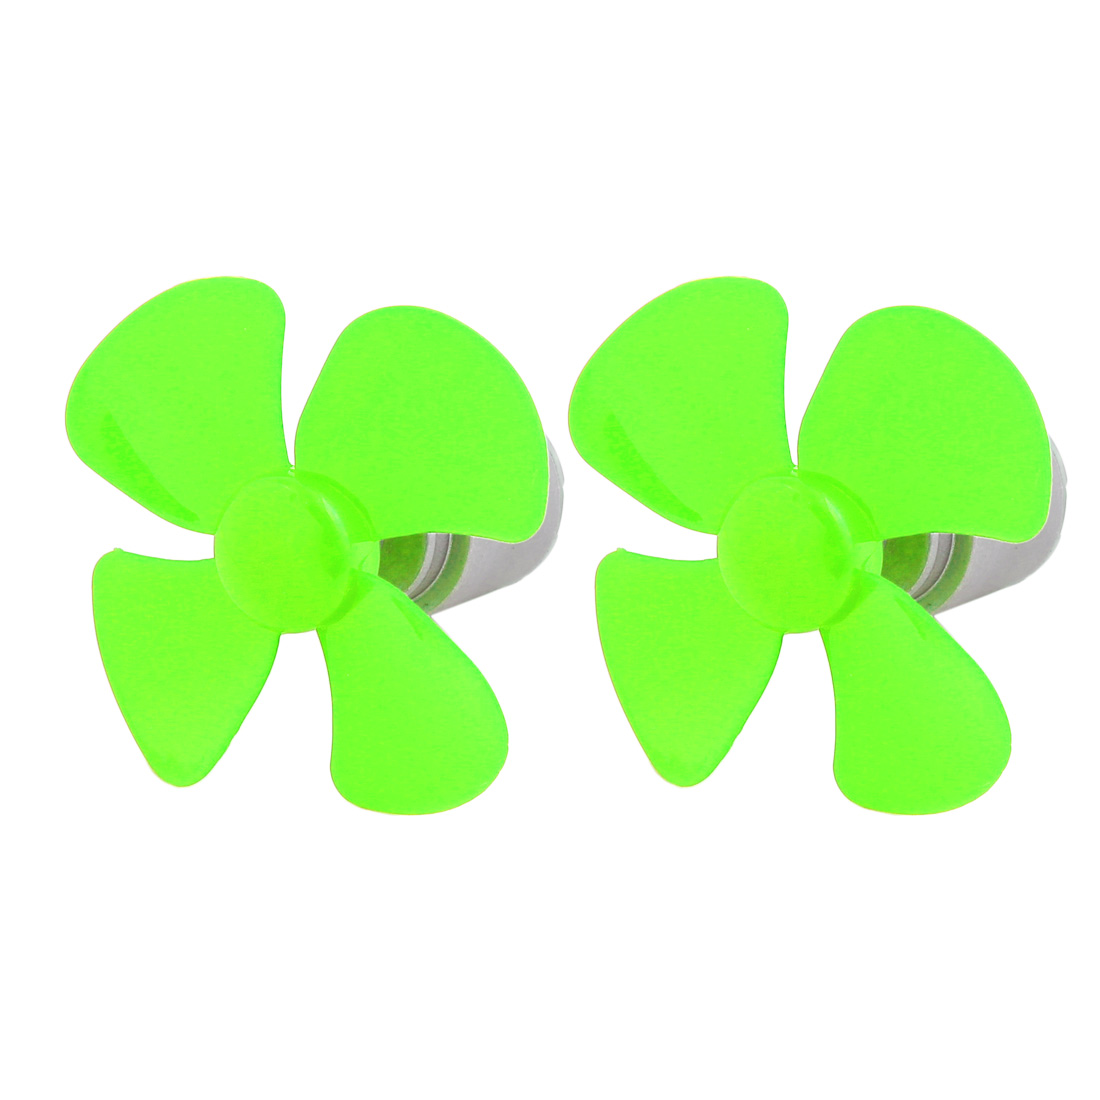 2pcs DC 1.5V 0.13A 2000RPM Green Strong Force Motor 4 Vanes 56mm Dia Propeller for RC Aircraft